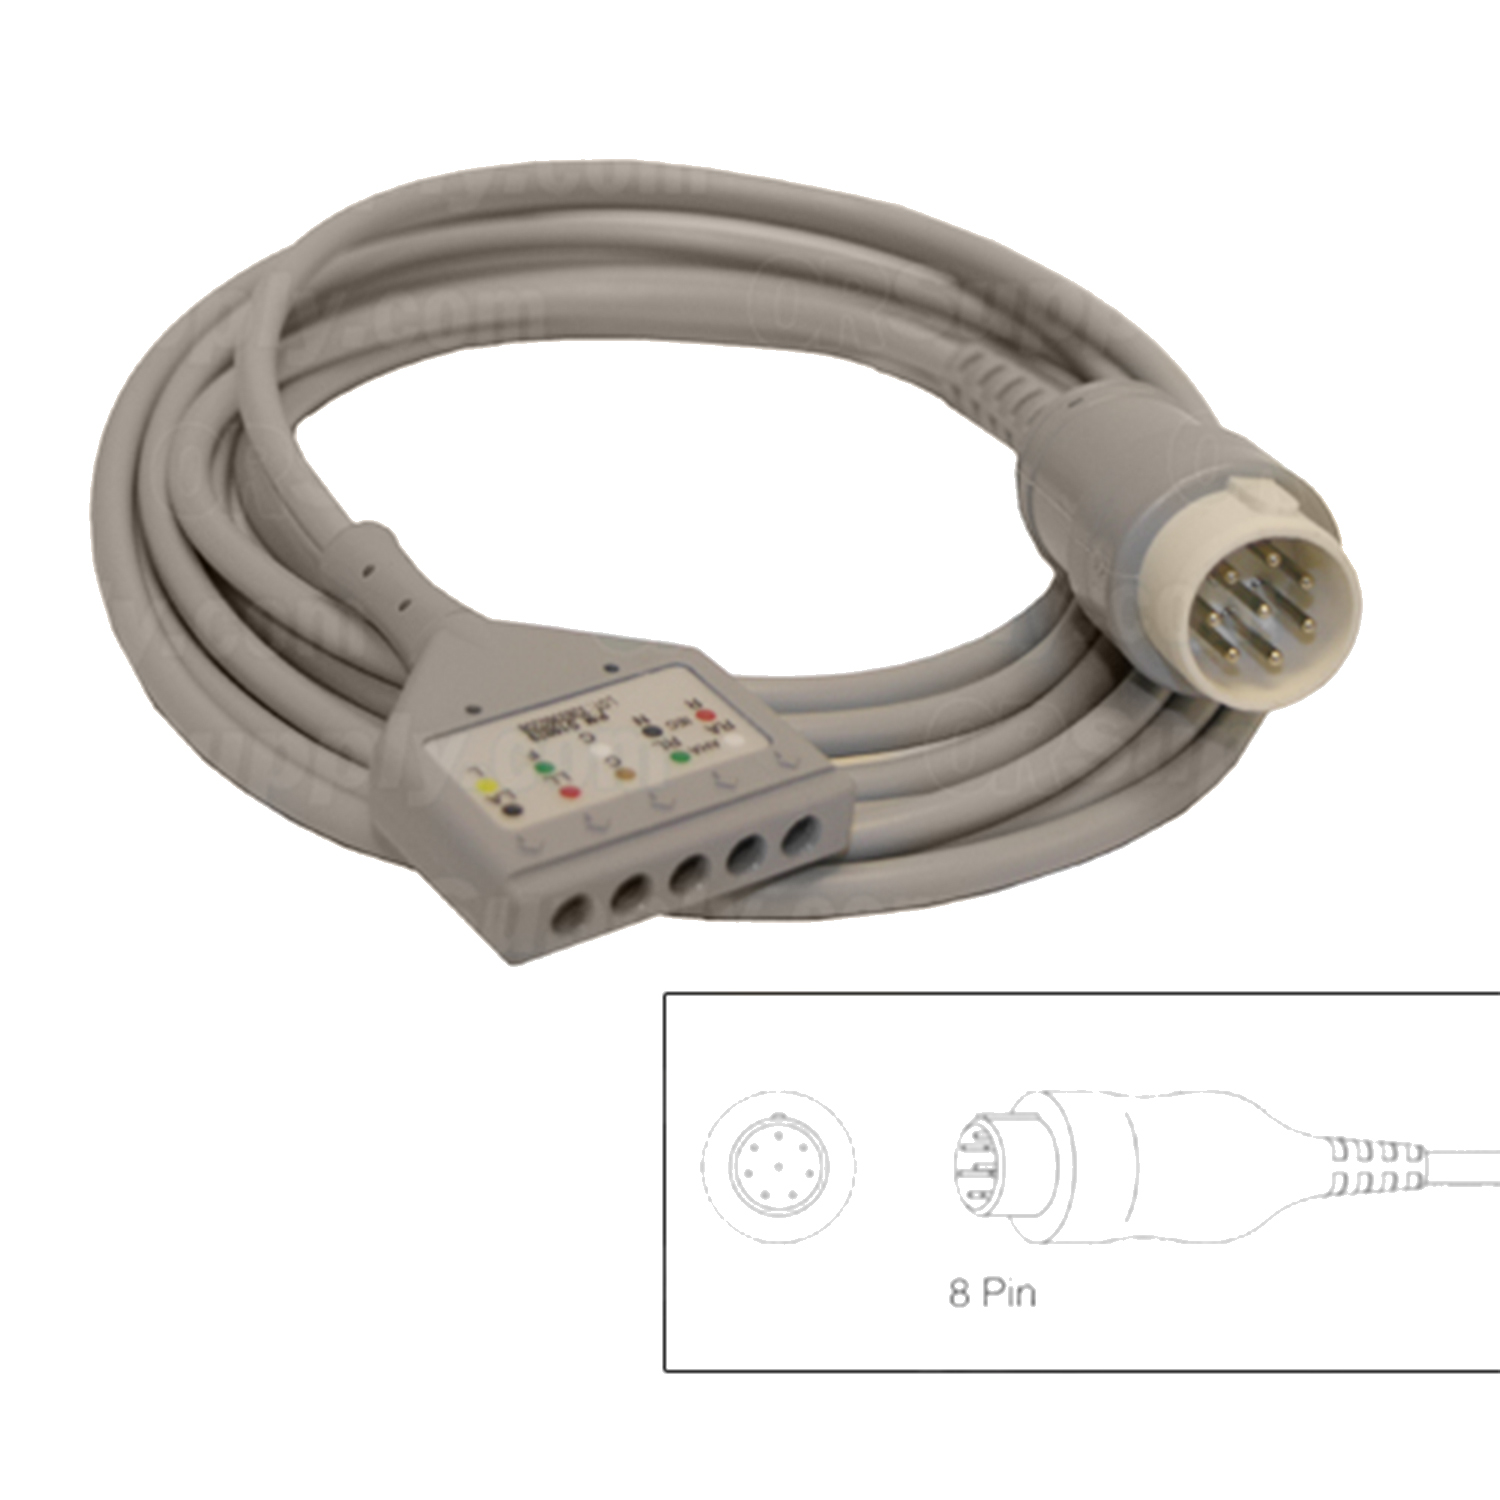 5-Lead Patient Cable for Hewlett Packard Codemasters and Merlin Monitors w/8 Pin Connectors